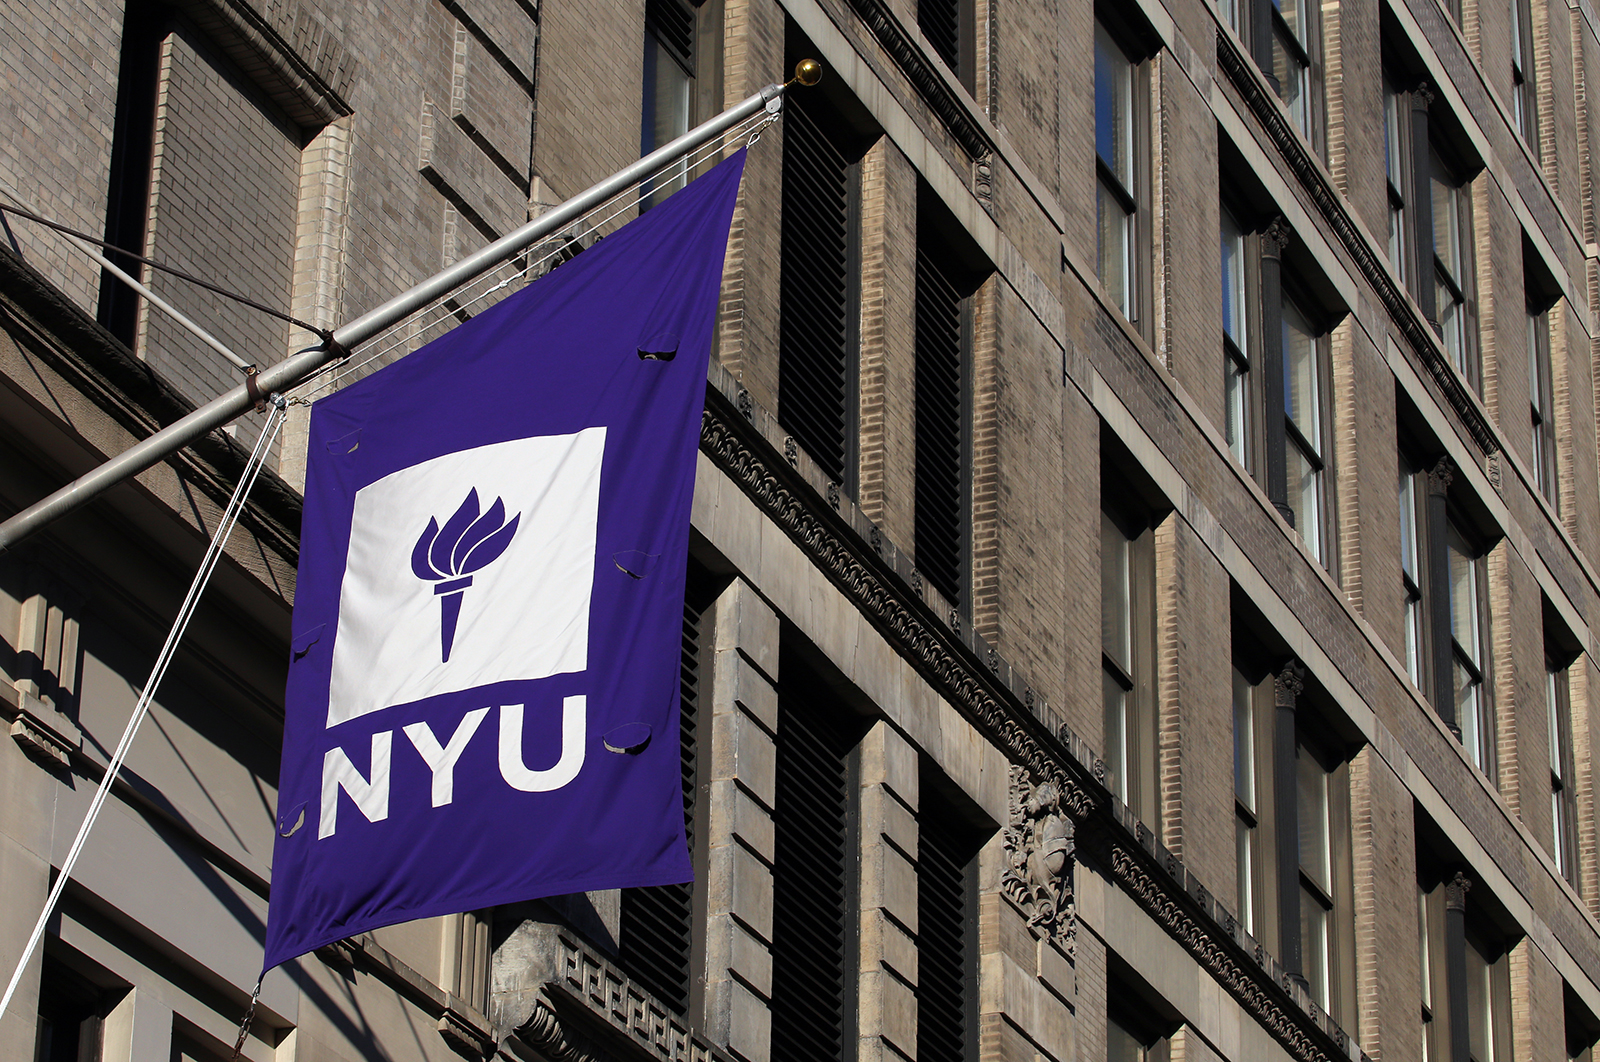 An NYU building in New York, NY as seen on July 16, 2017.